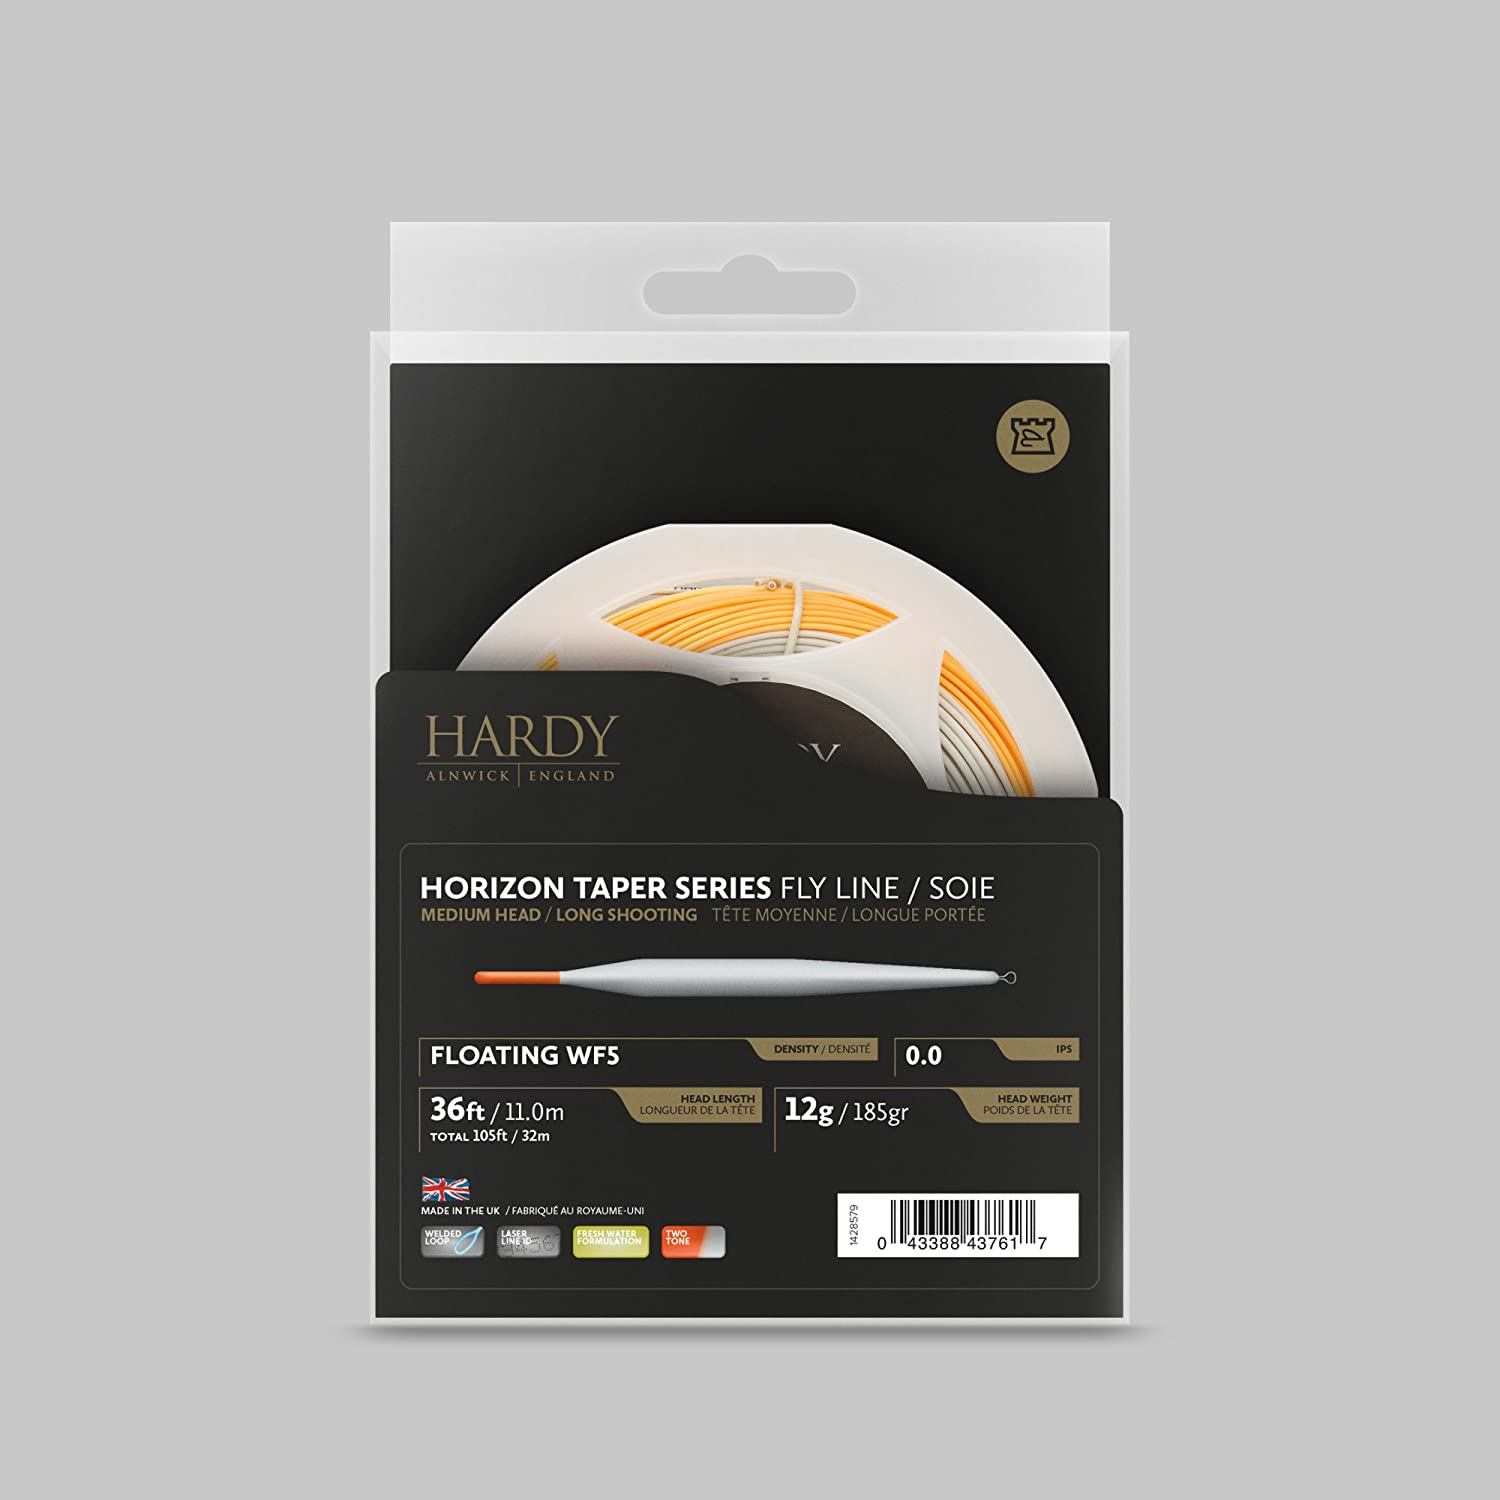 Hardy Horizon Taper Series Twin Float Fly Fishing Line